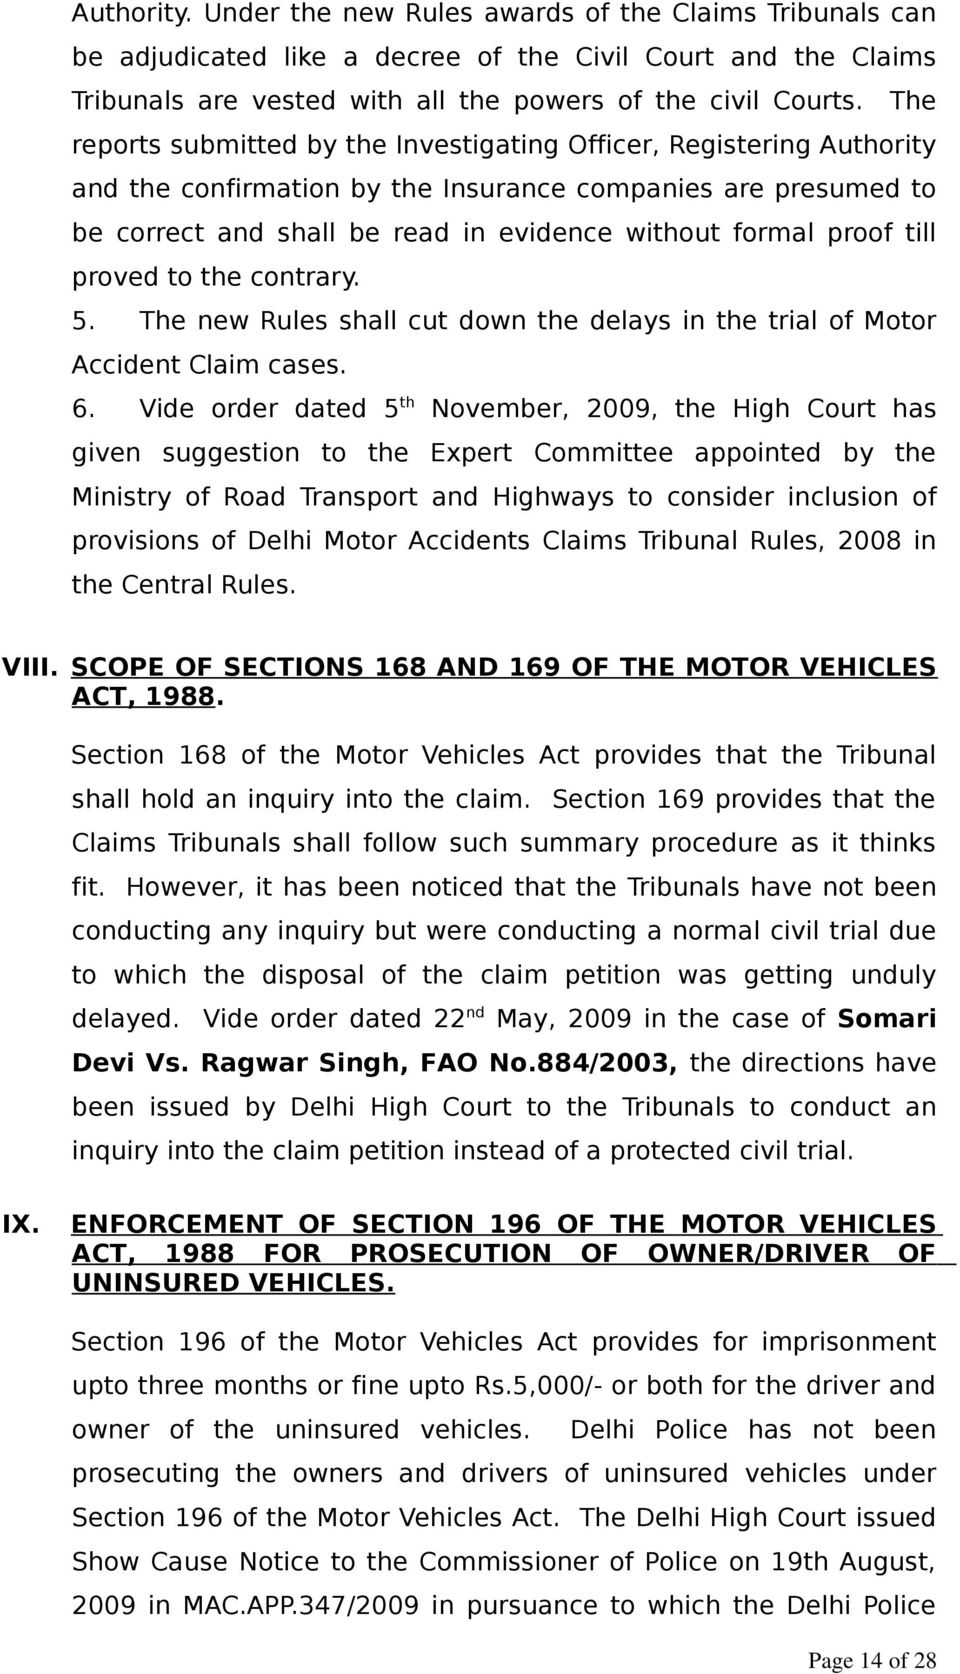 till proved to the contrary. 5. The new Rules shall cut down the delays in the trial of Motor Accident Claim cases. 6.